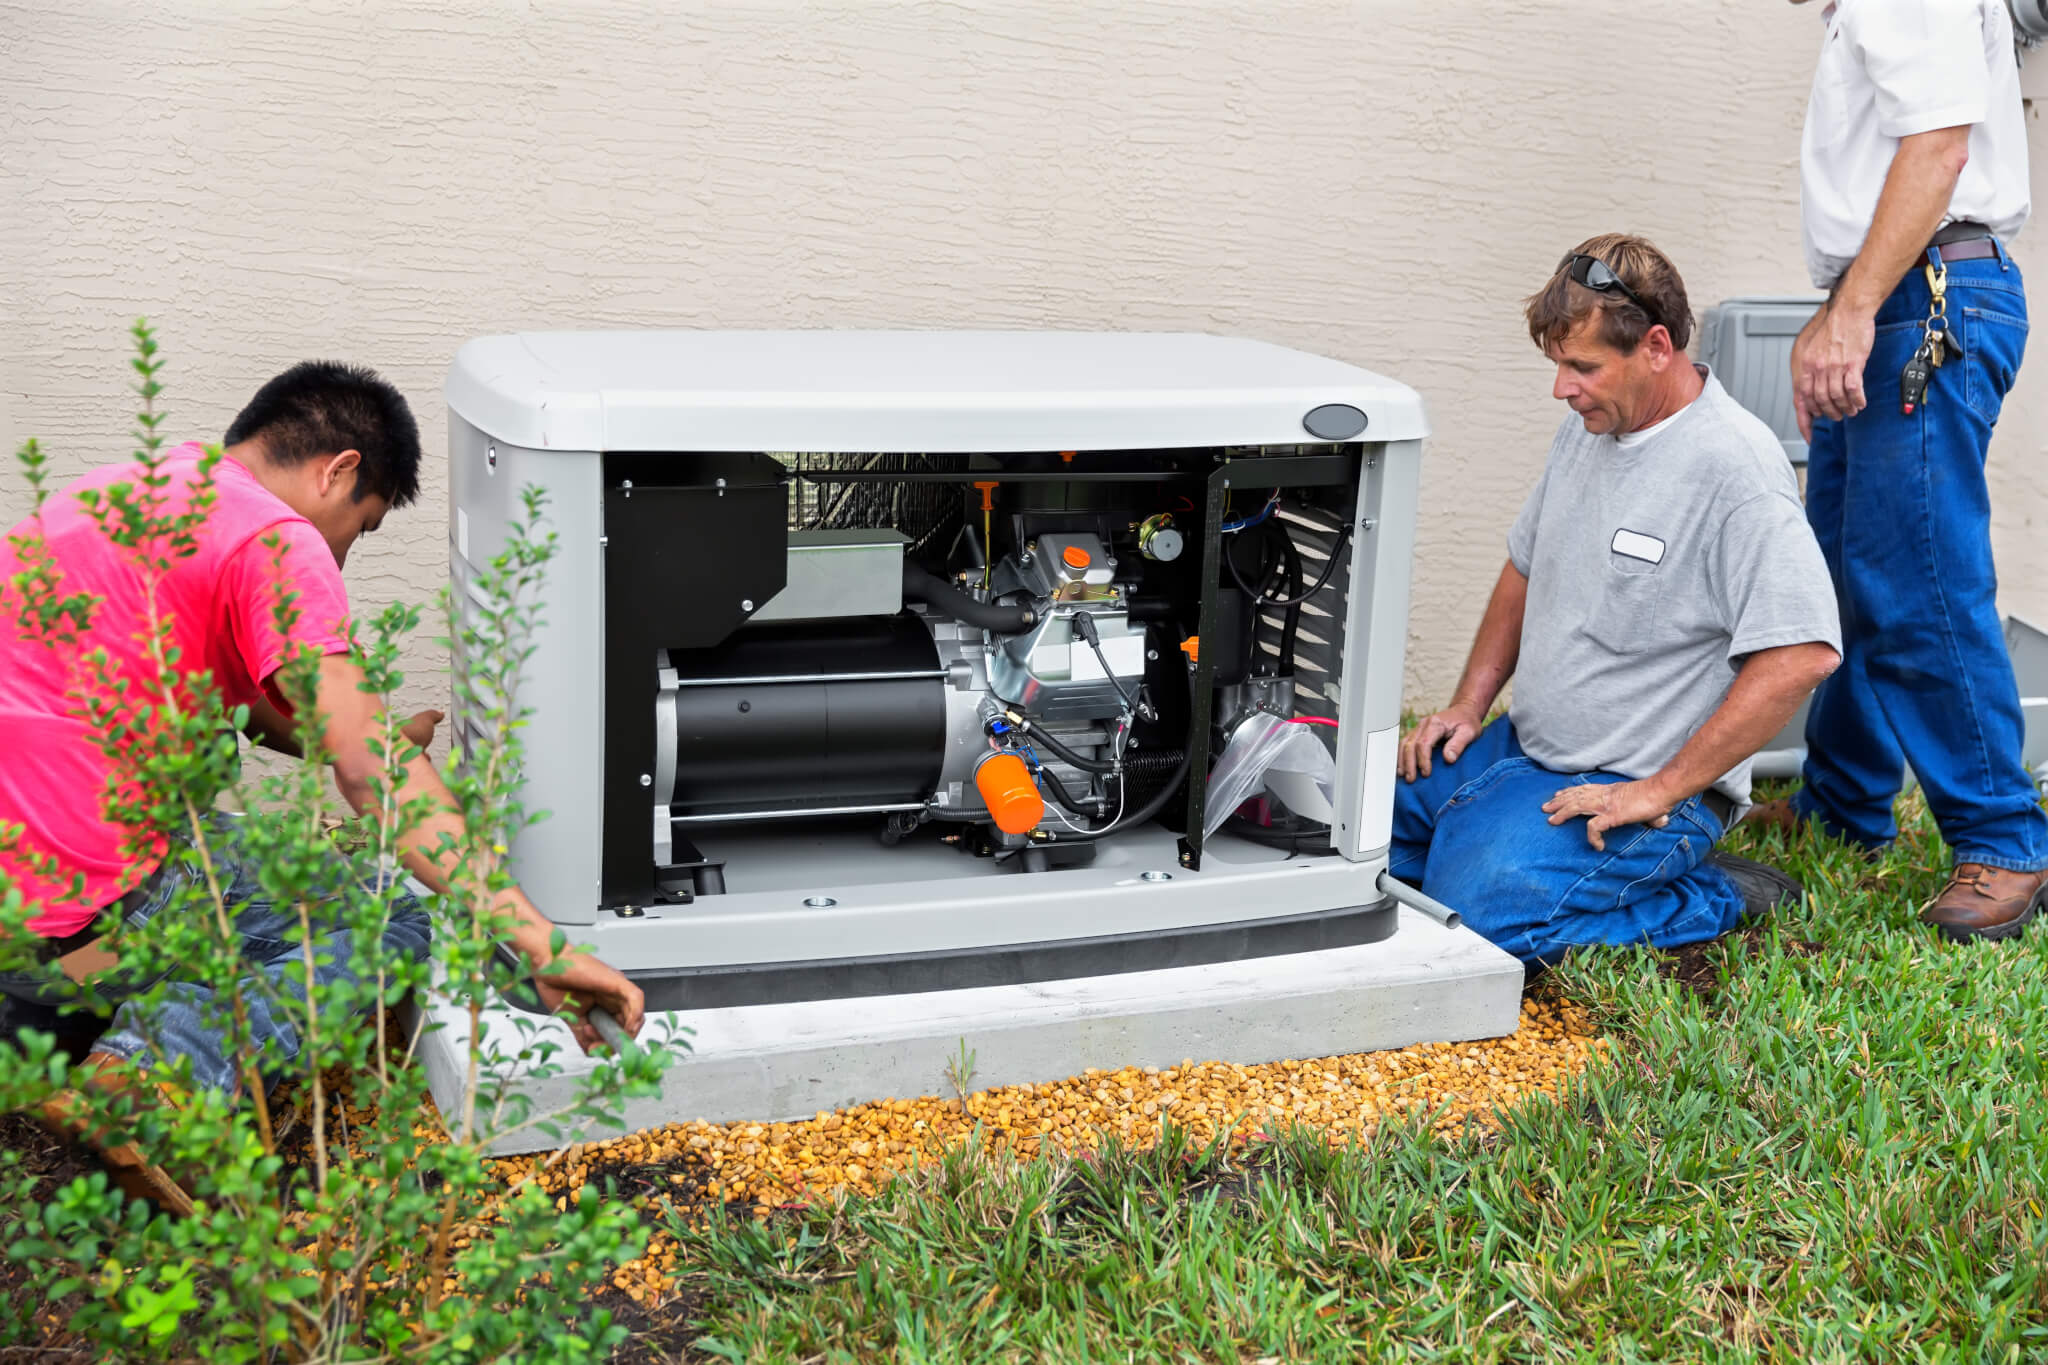 Generators nj - Installing an Whole House Emergency Generator